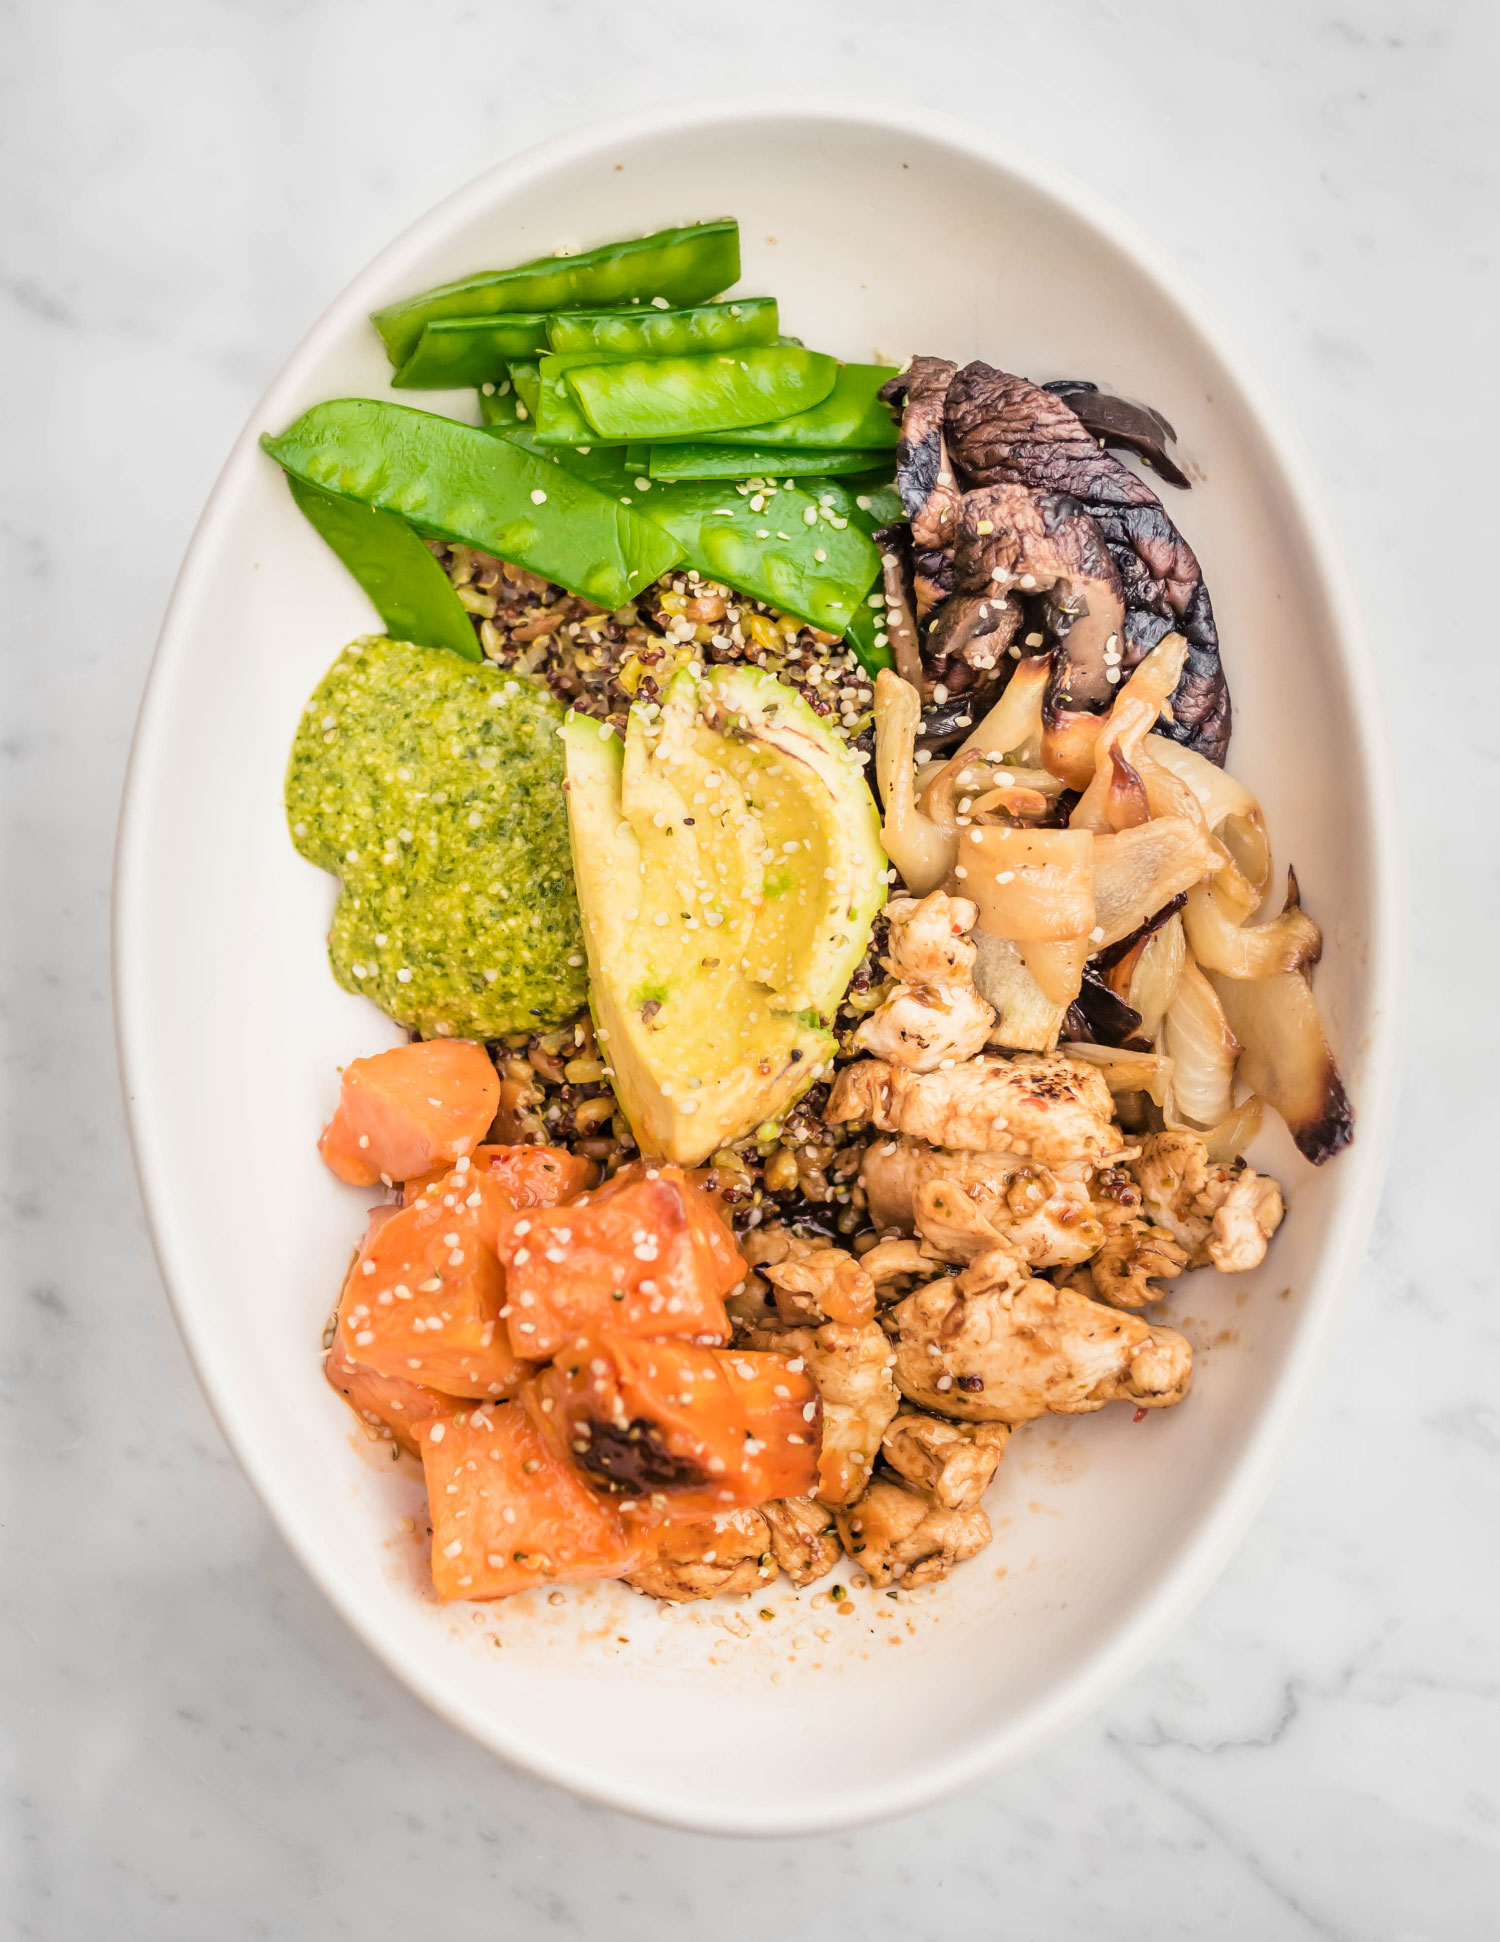 True Food Kitchen Opens in Legacy West Plano  Plano Magazine